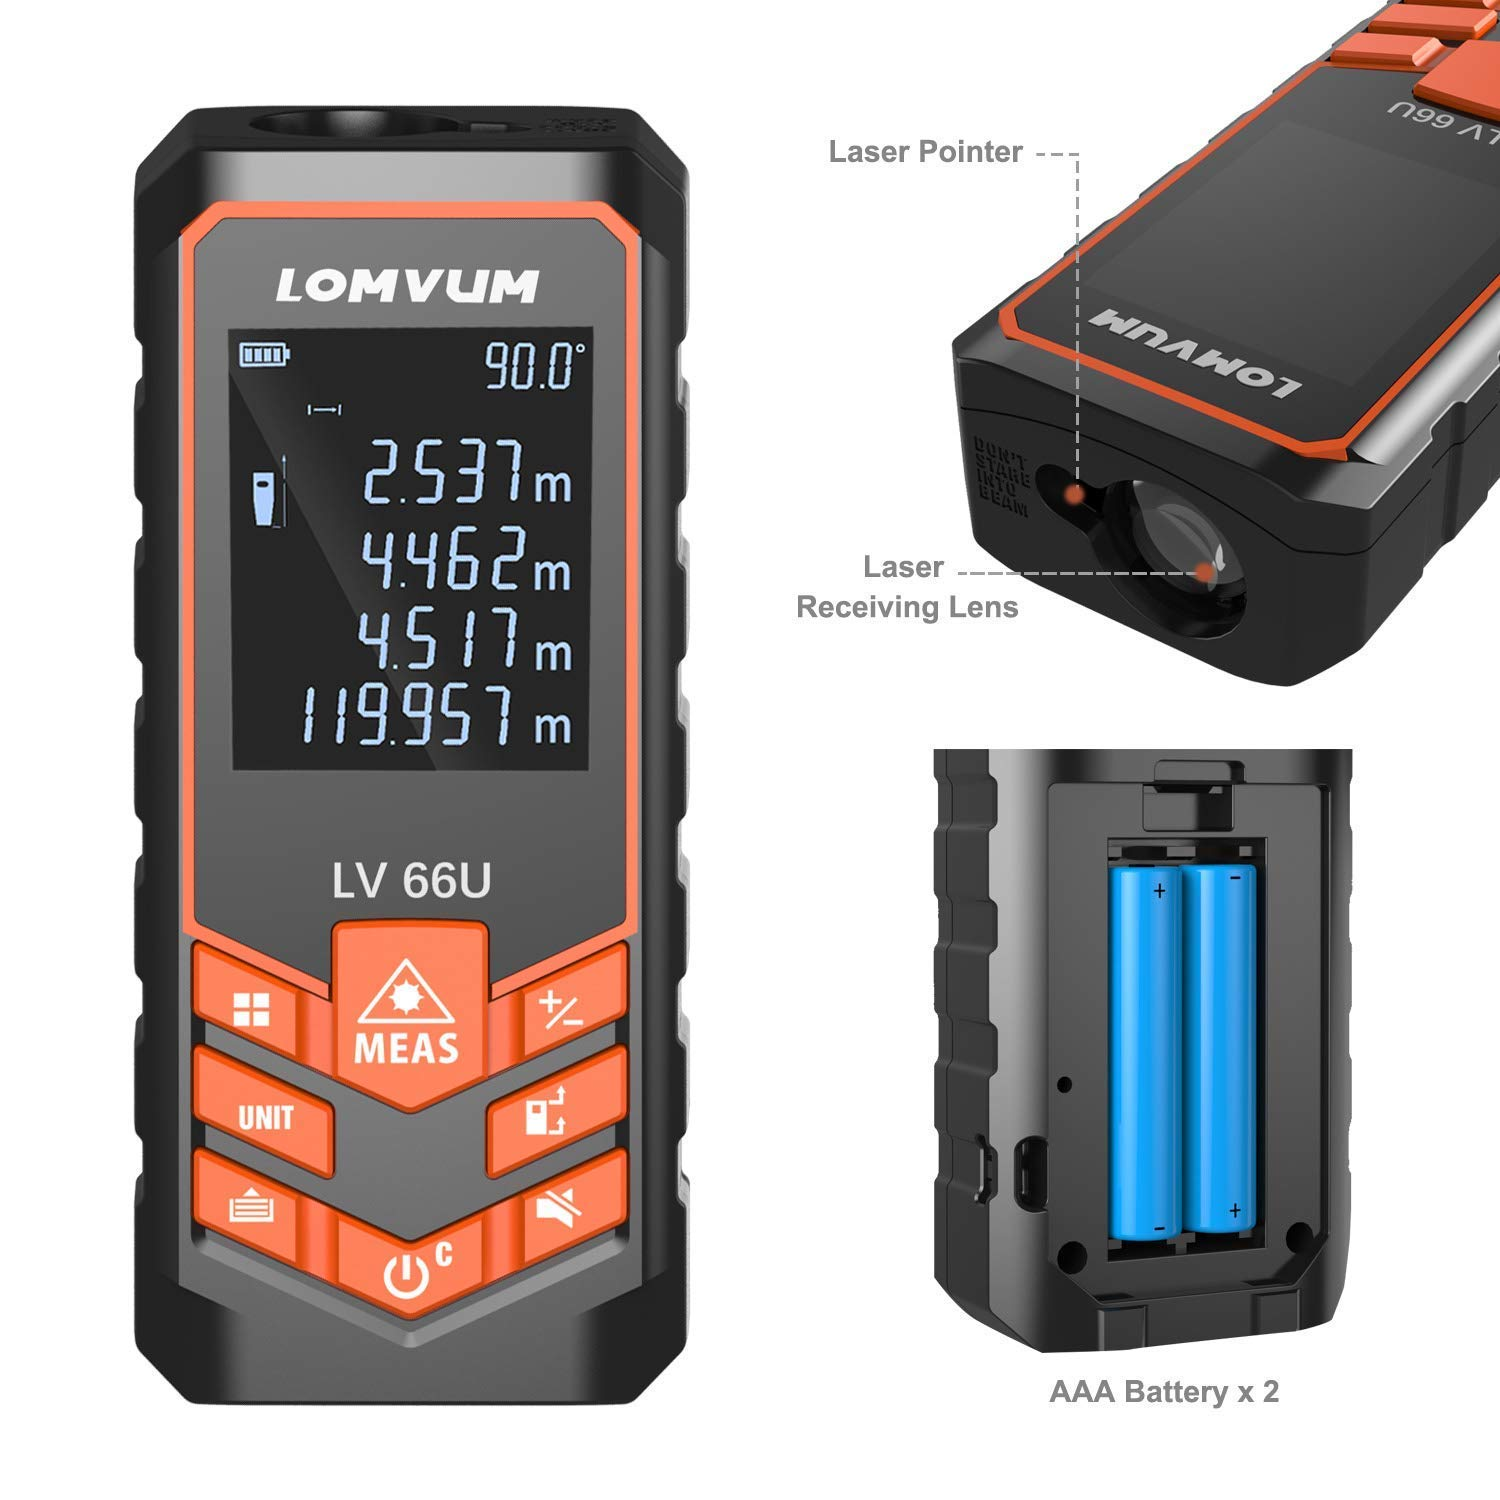 120m Laser Measure,LOMVUM 393ft Digital Laser Distance Meter with Mute Function Large LCD Backlight Display,Measure Distance,Area and Volume,Pythagorean Mode Battery Included